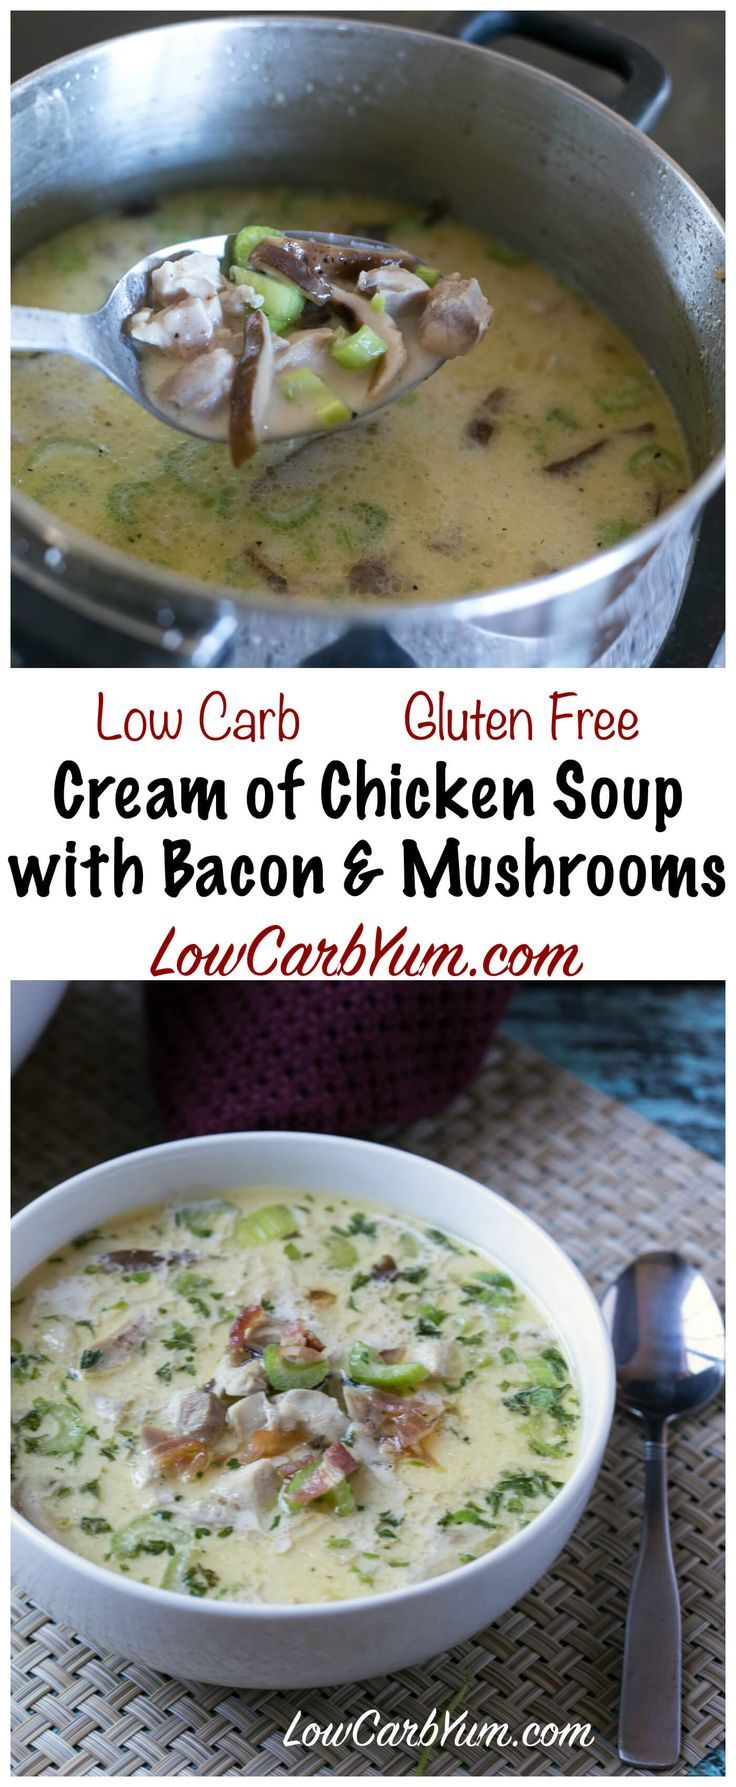 Easy recipes using cream of chicken soup